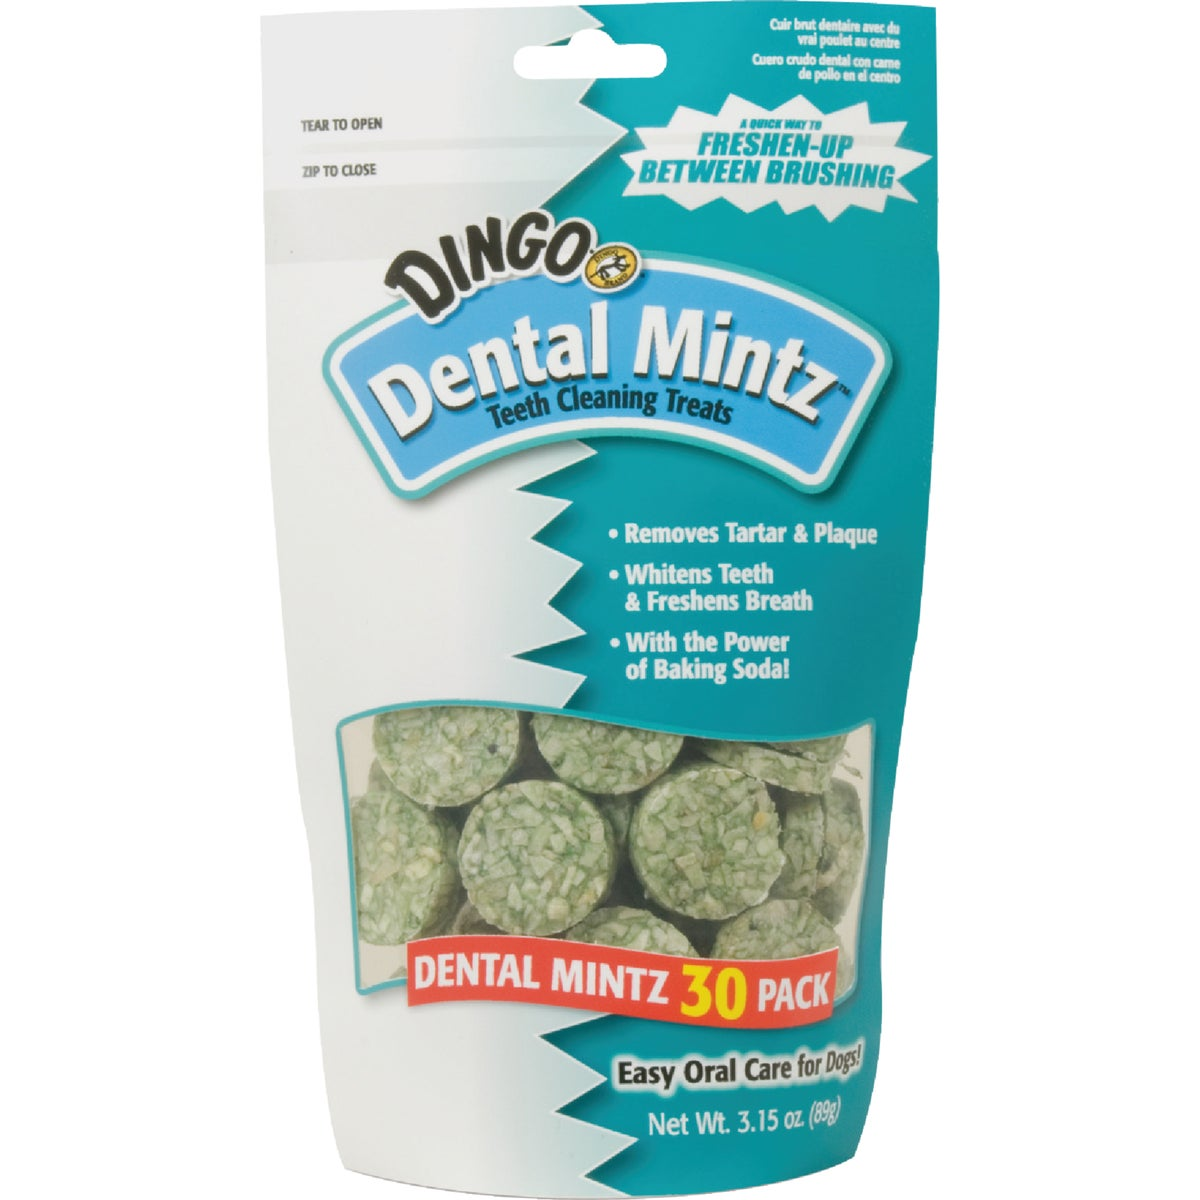 30PK DINGO DENTAL MINTZ - P-26014 by United Pet Group